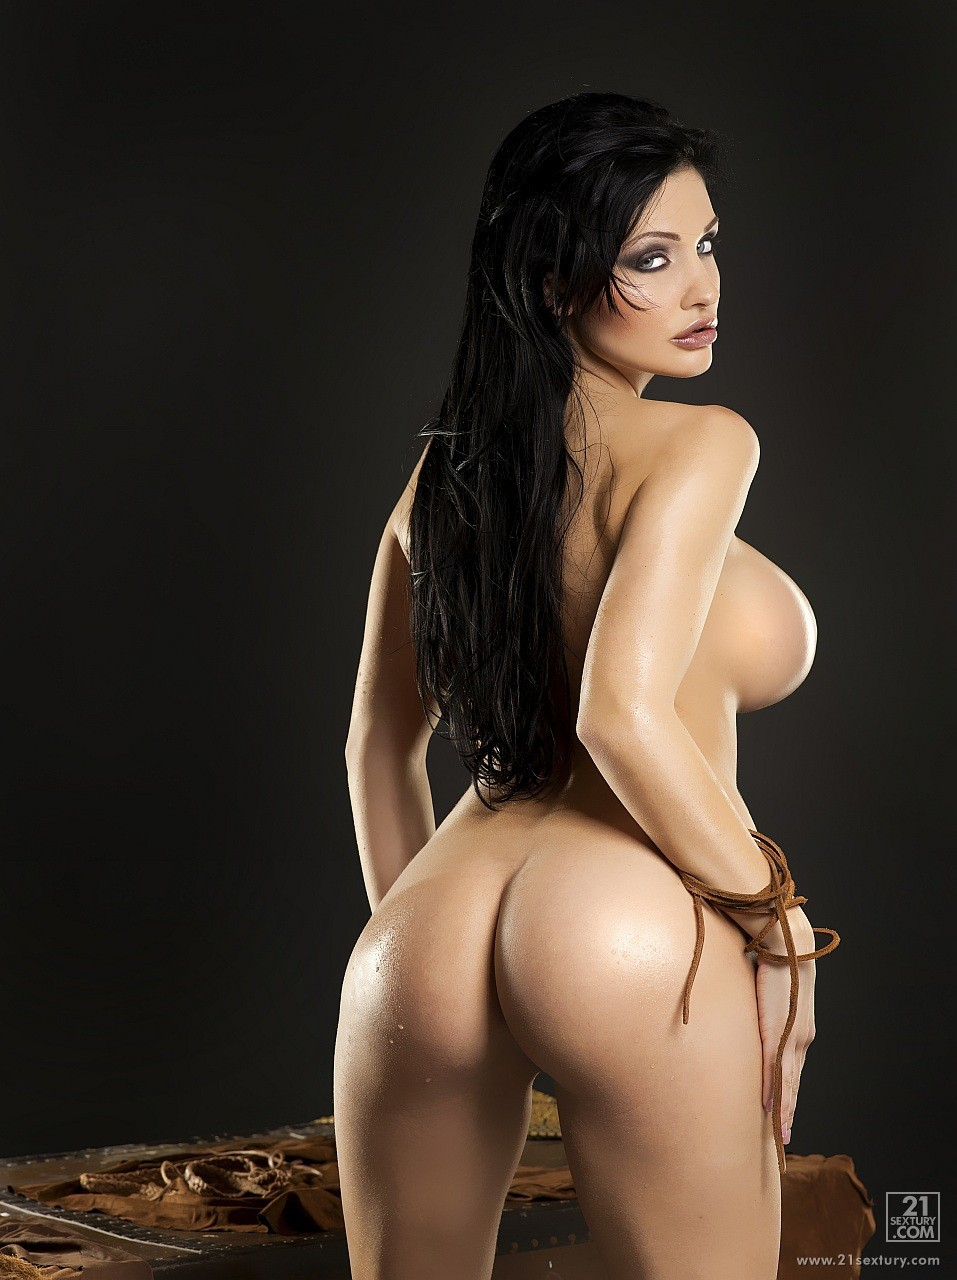 from Derek wwe and wwe divas naked